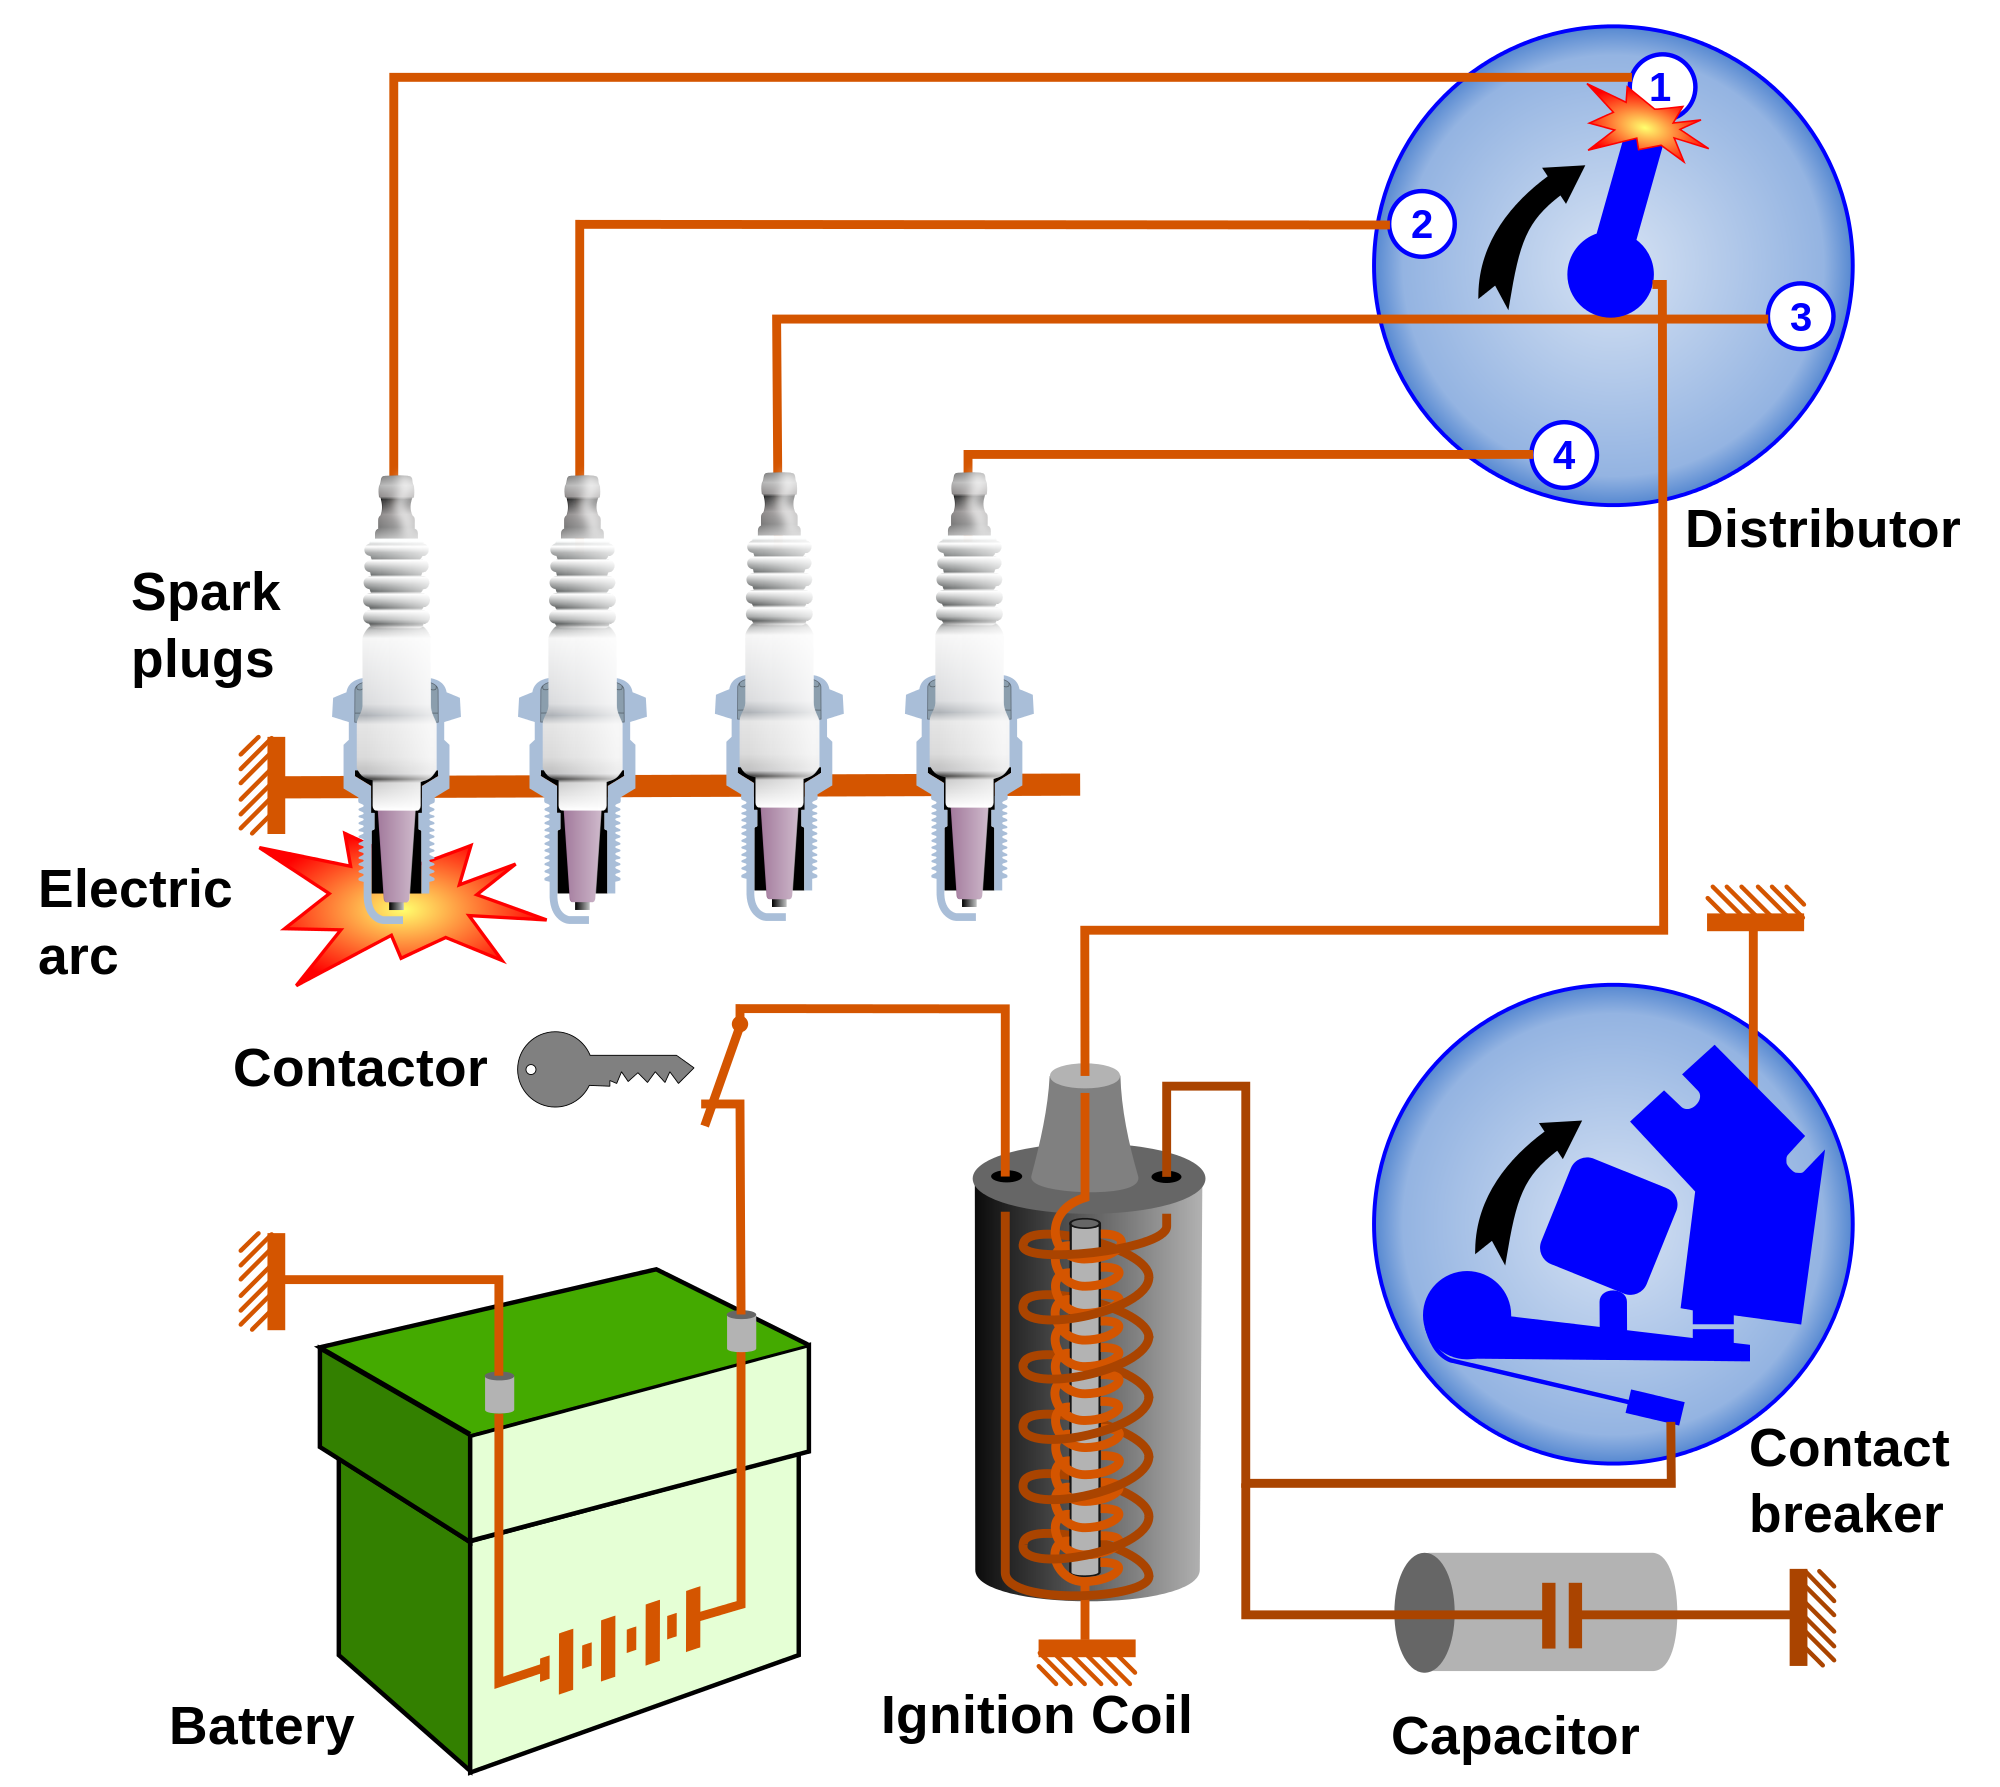 File:Car ignition system.svg.